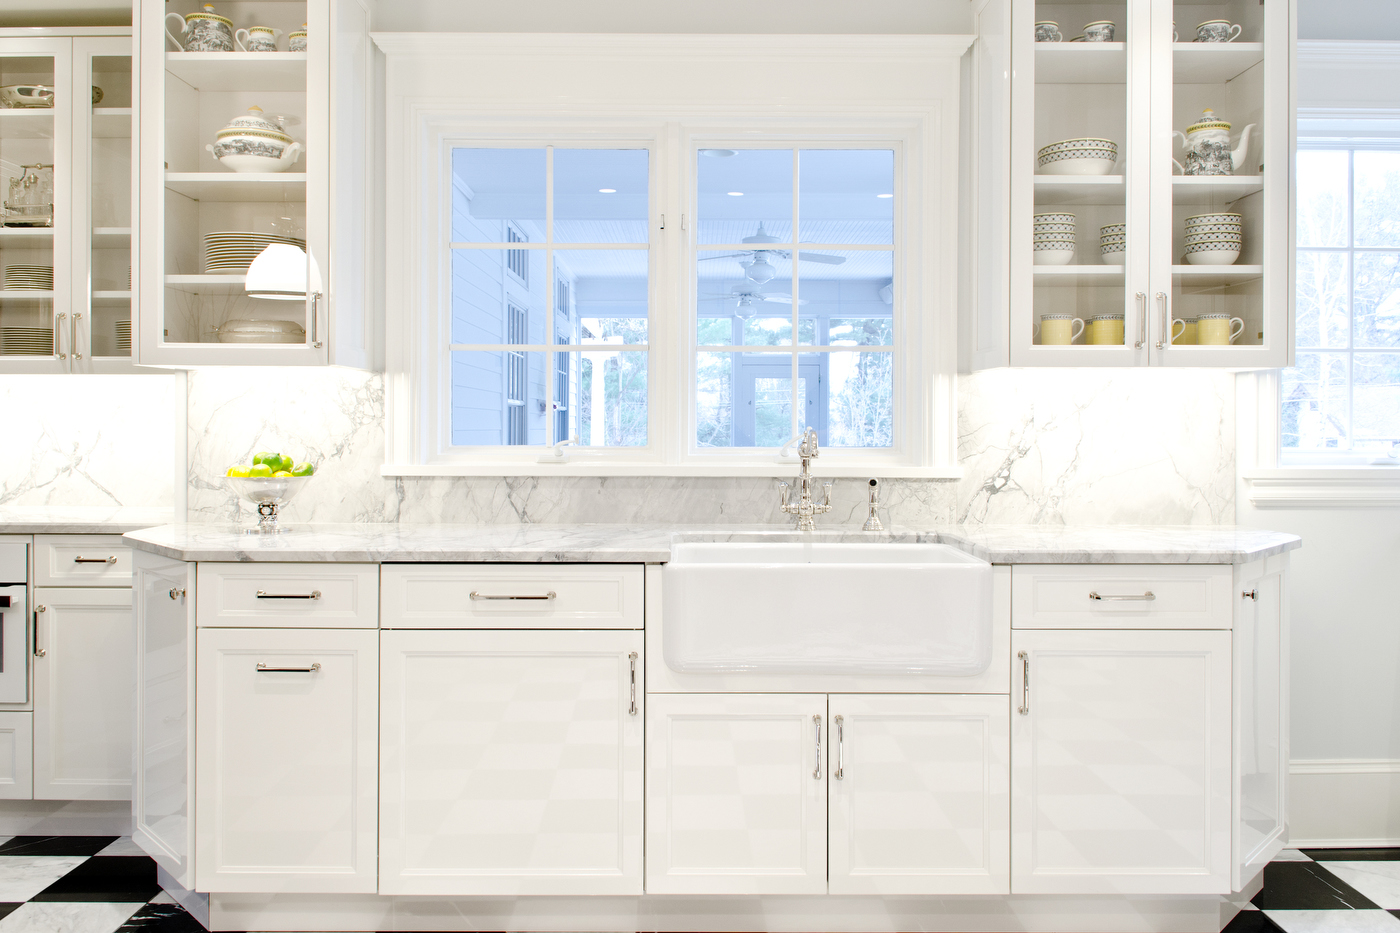 Blog | FOSTER CUSTOM KITCHENS